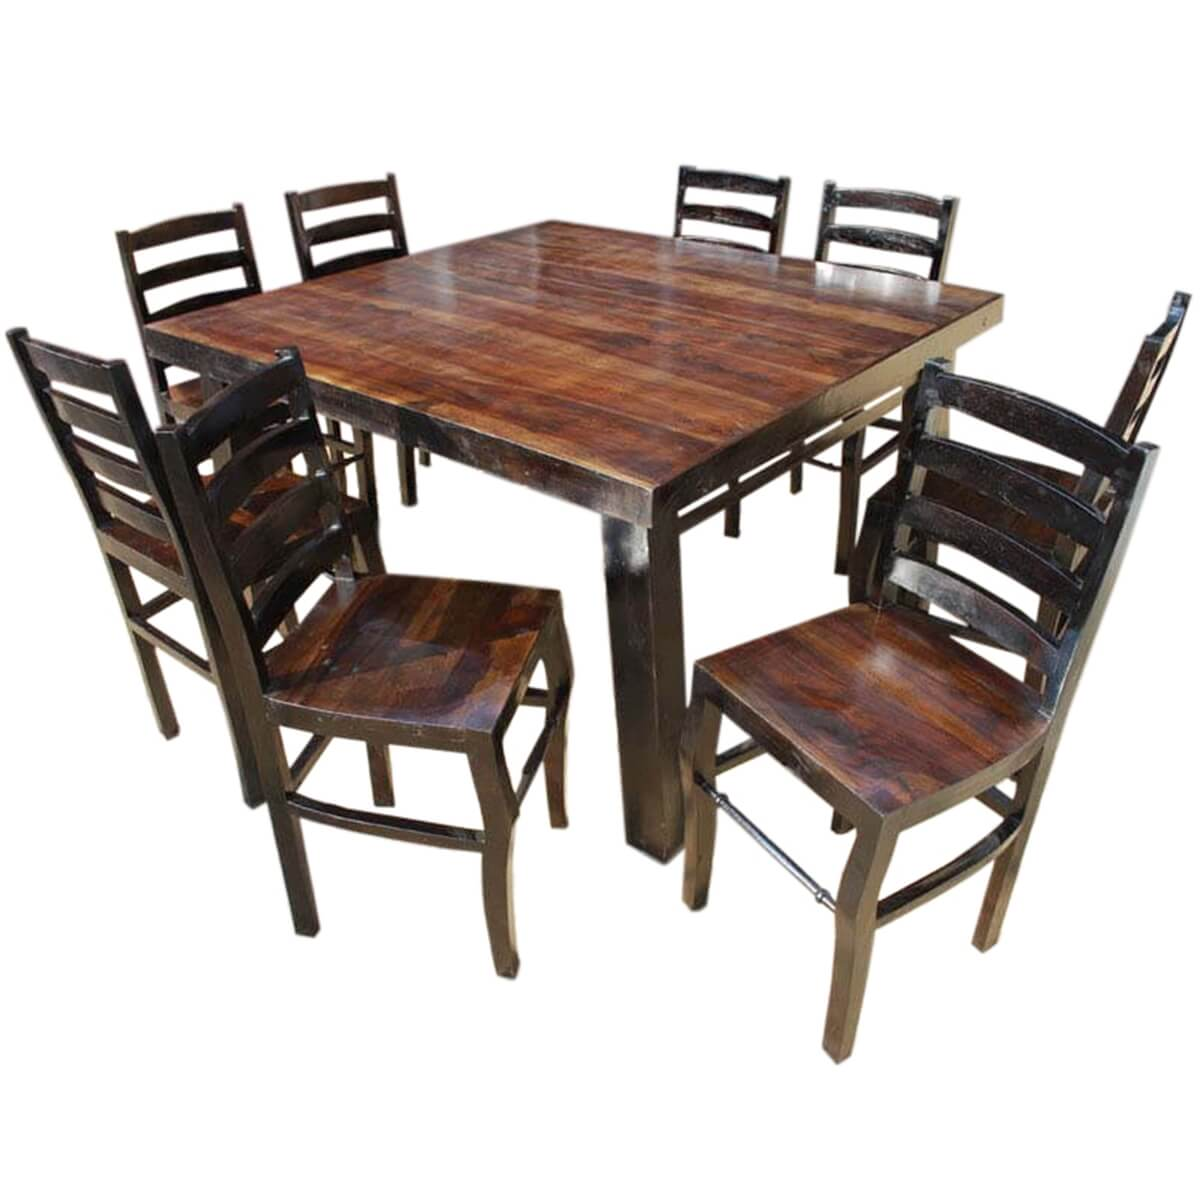 Counter Height Dining Table For 8: Rustic Counter Height Kansas City Square Dining Set For 8